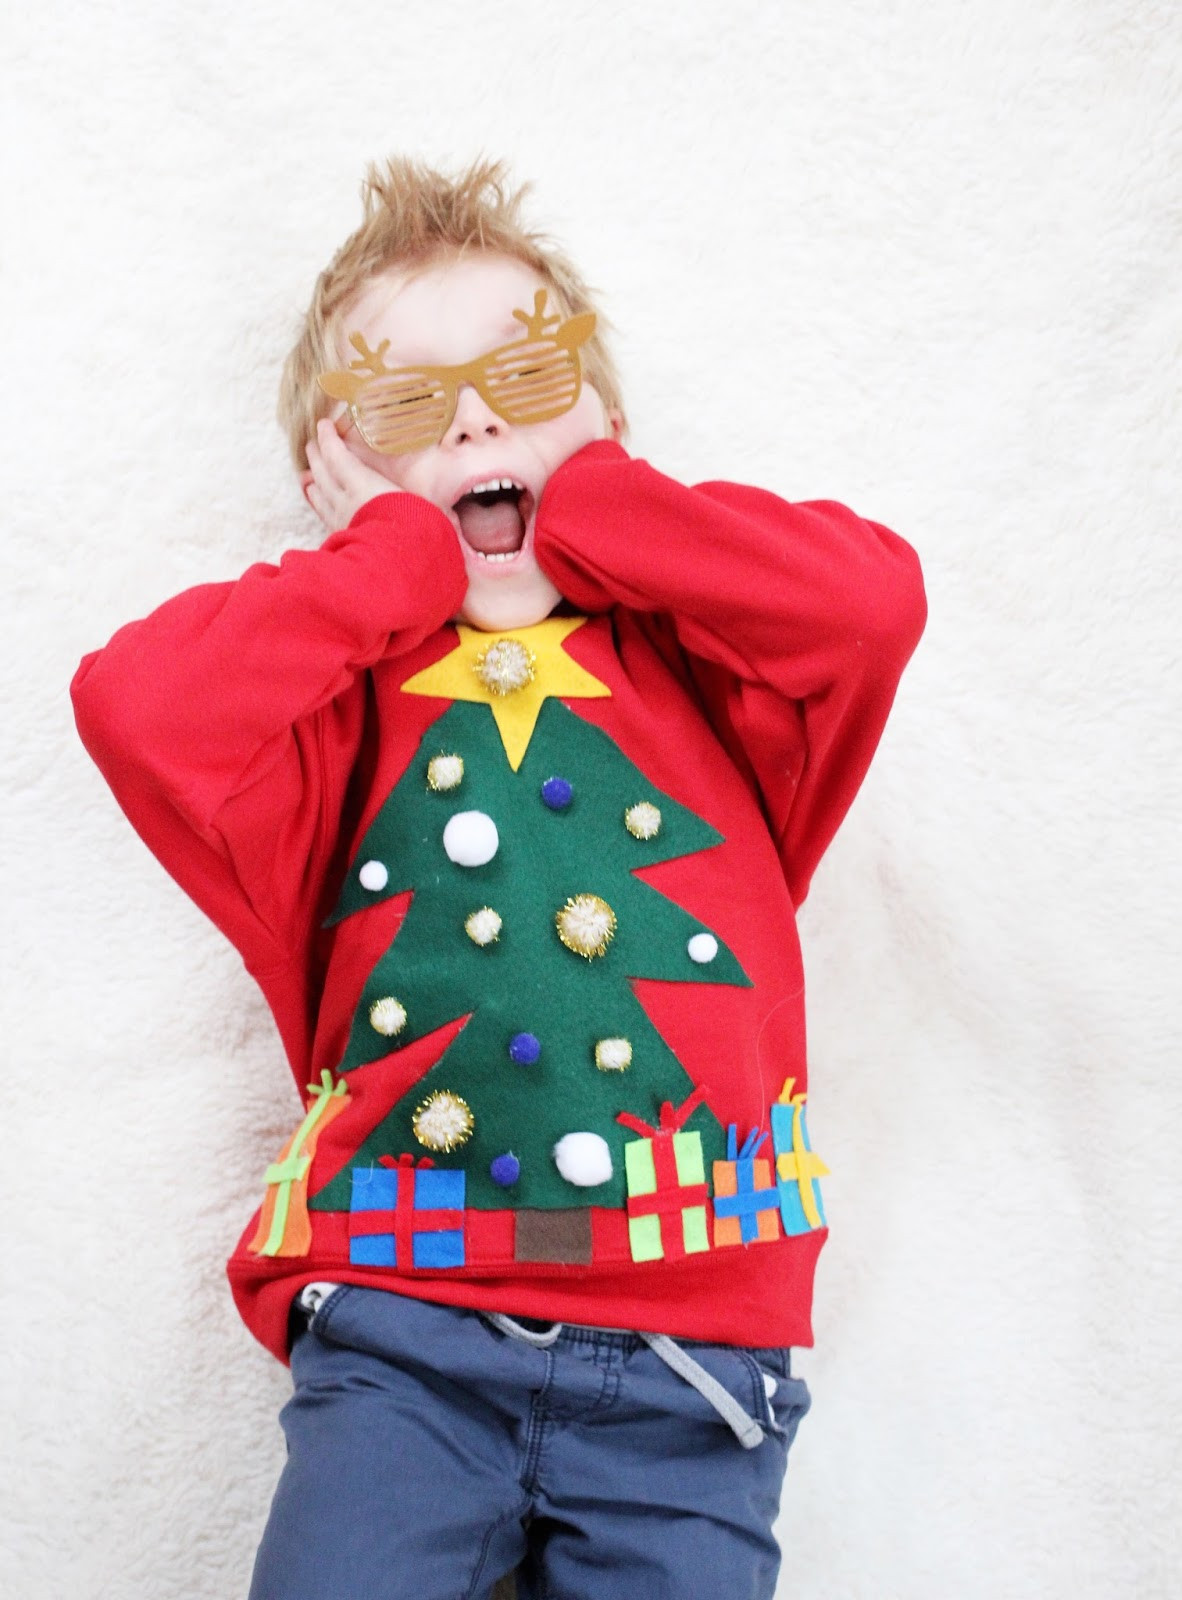 Toddler Ugly Christmas Sweater DIY  DIY Ugly Christmas Sweater For Kids · The Girl in the Red